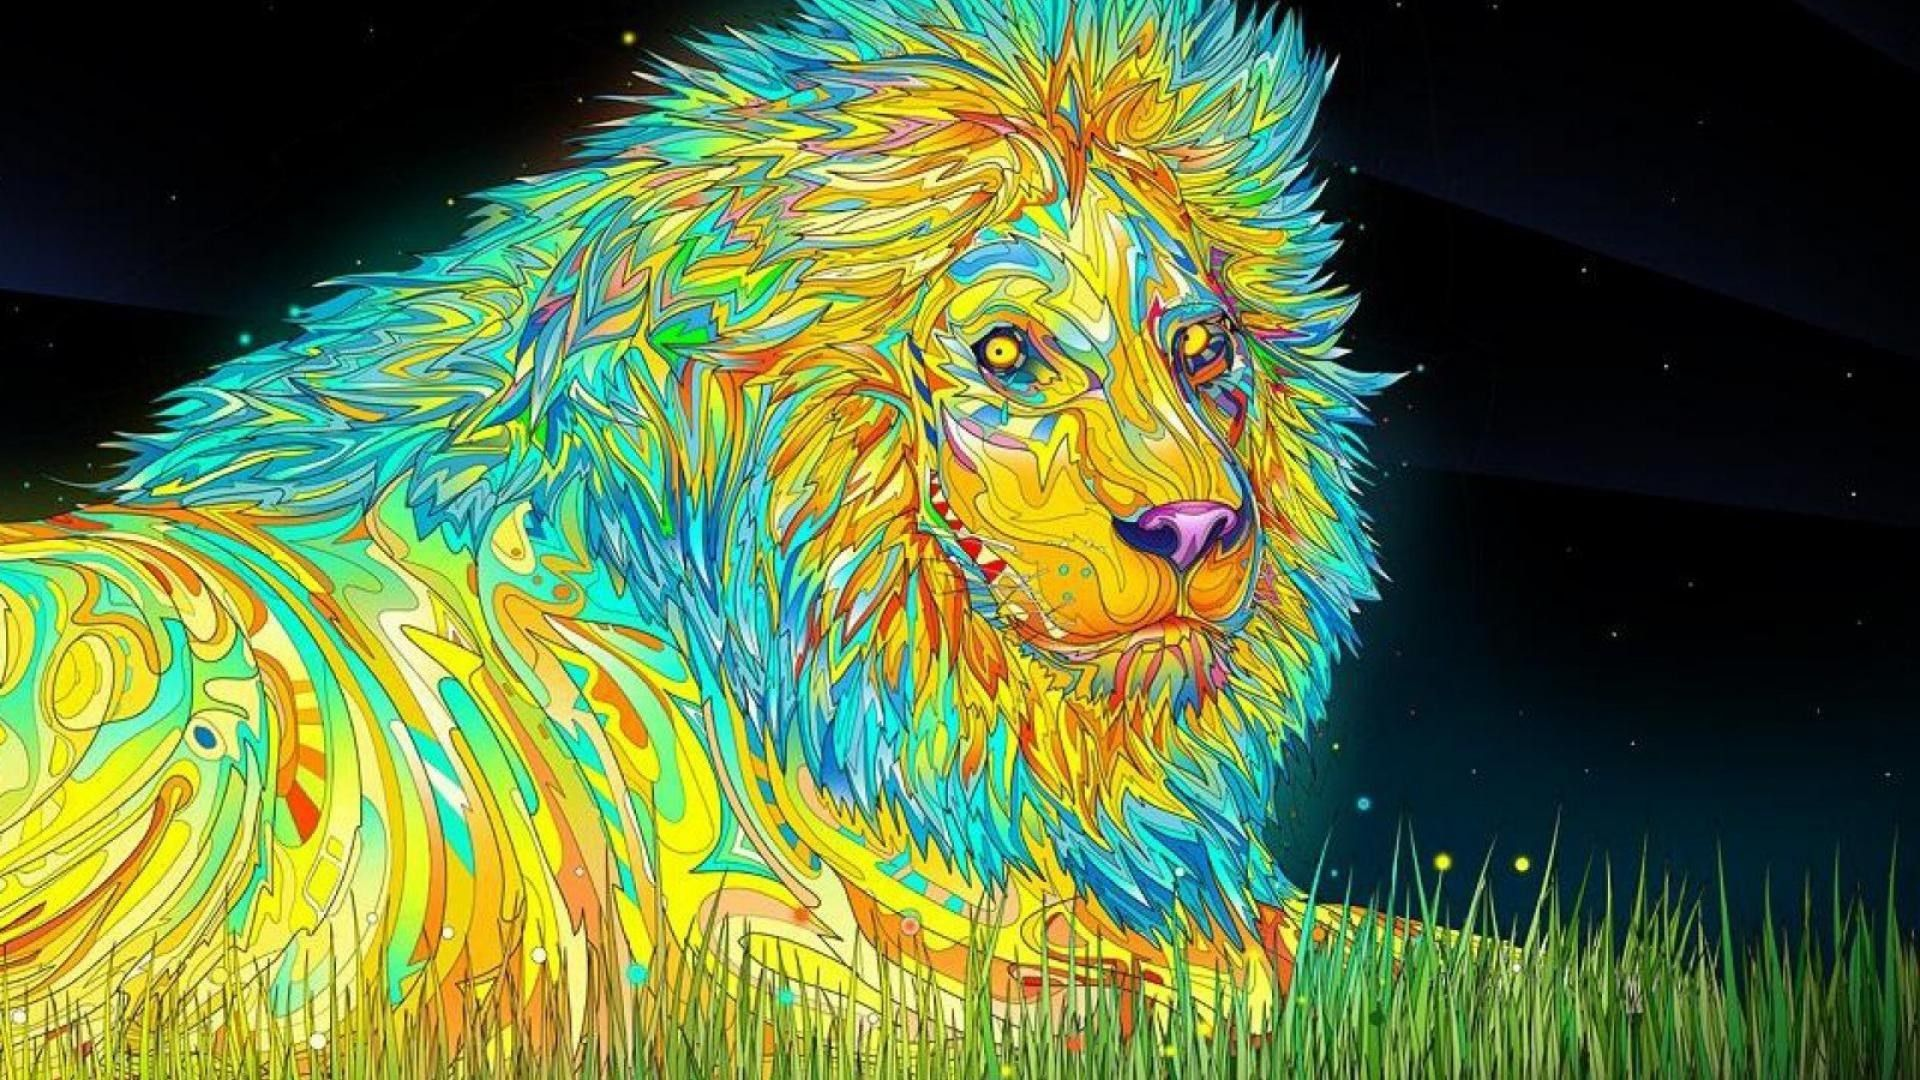 1920x1080 Trippy Wallpapers Full Hd Trippy Wallpaper Trippy Backgrounds Colorful Lion